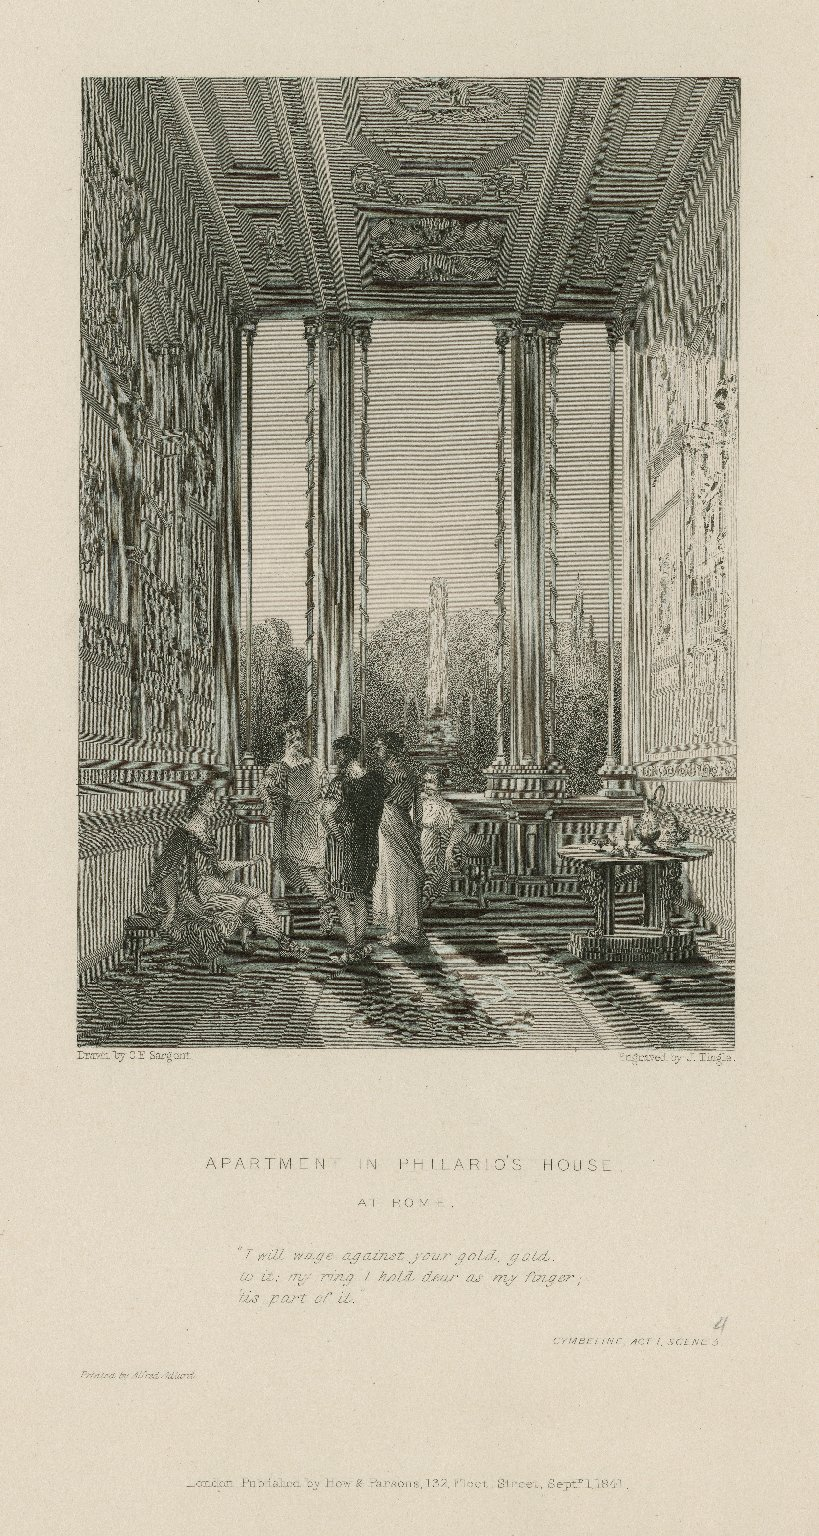 Apartment in Philario's house at Rome, I will wage against your gold, gold to it: my ring I hold dear as my finger, 'tis part of it, Cymbeline, act 1, scene 5 [i.e. 4] [graphic] / drawn by G.F. Sargent ; engraved by J. Tingle.